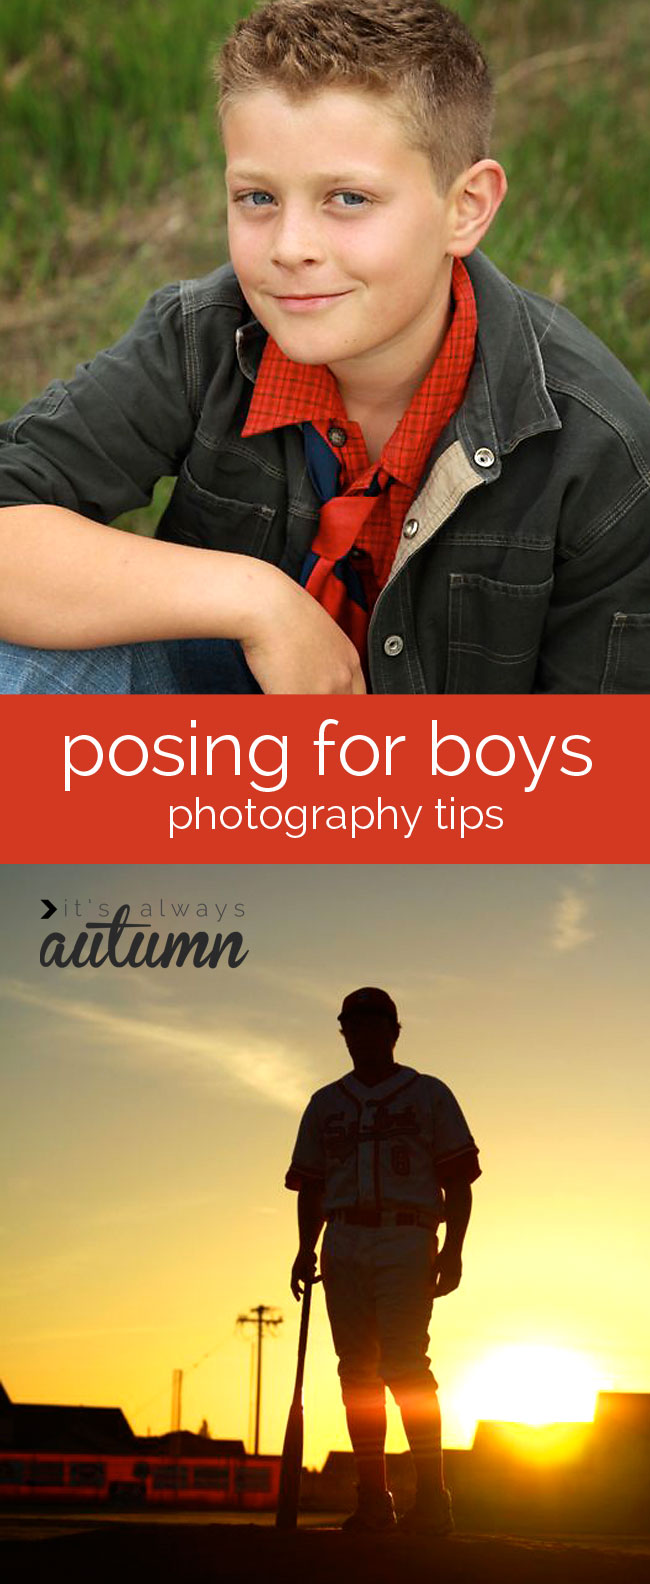 photography tips & tricks: how to pose boys